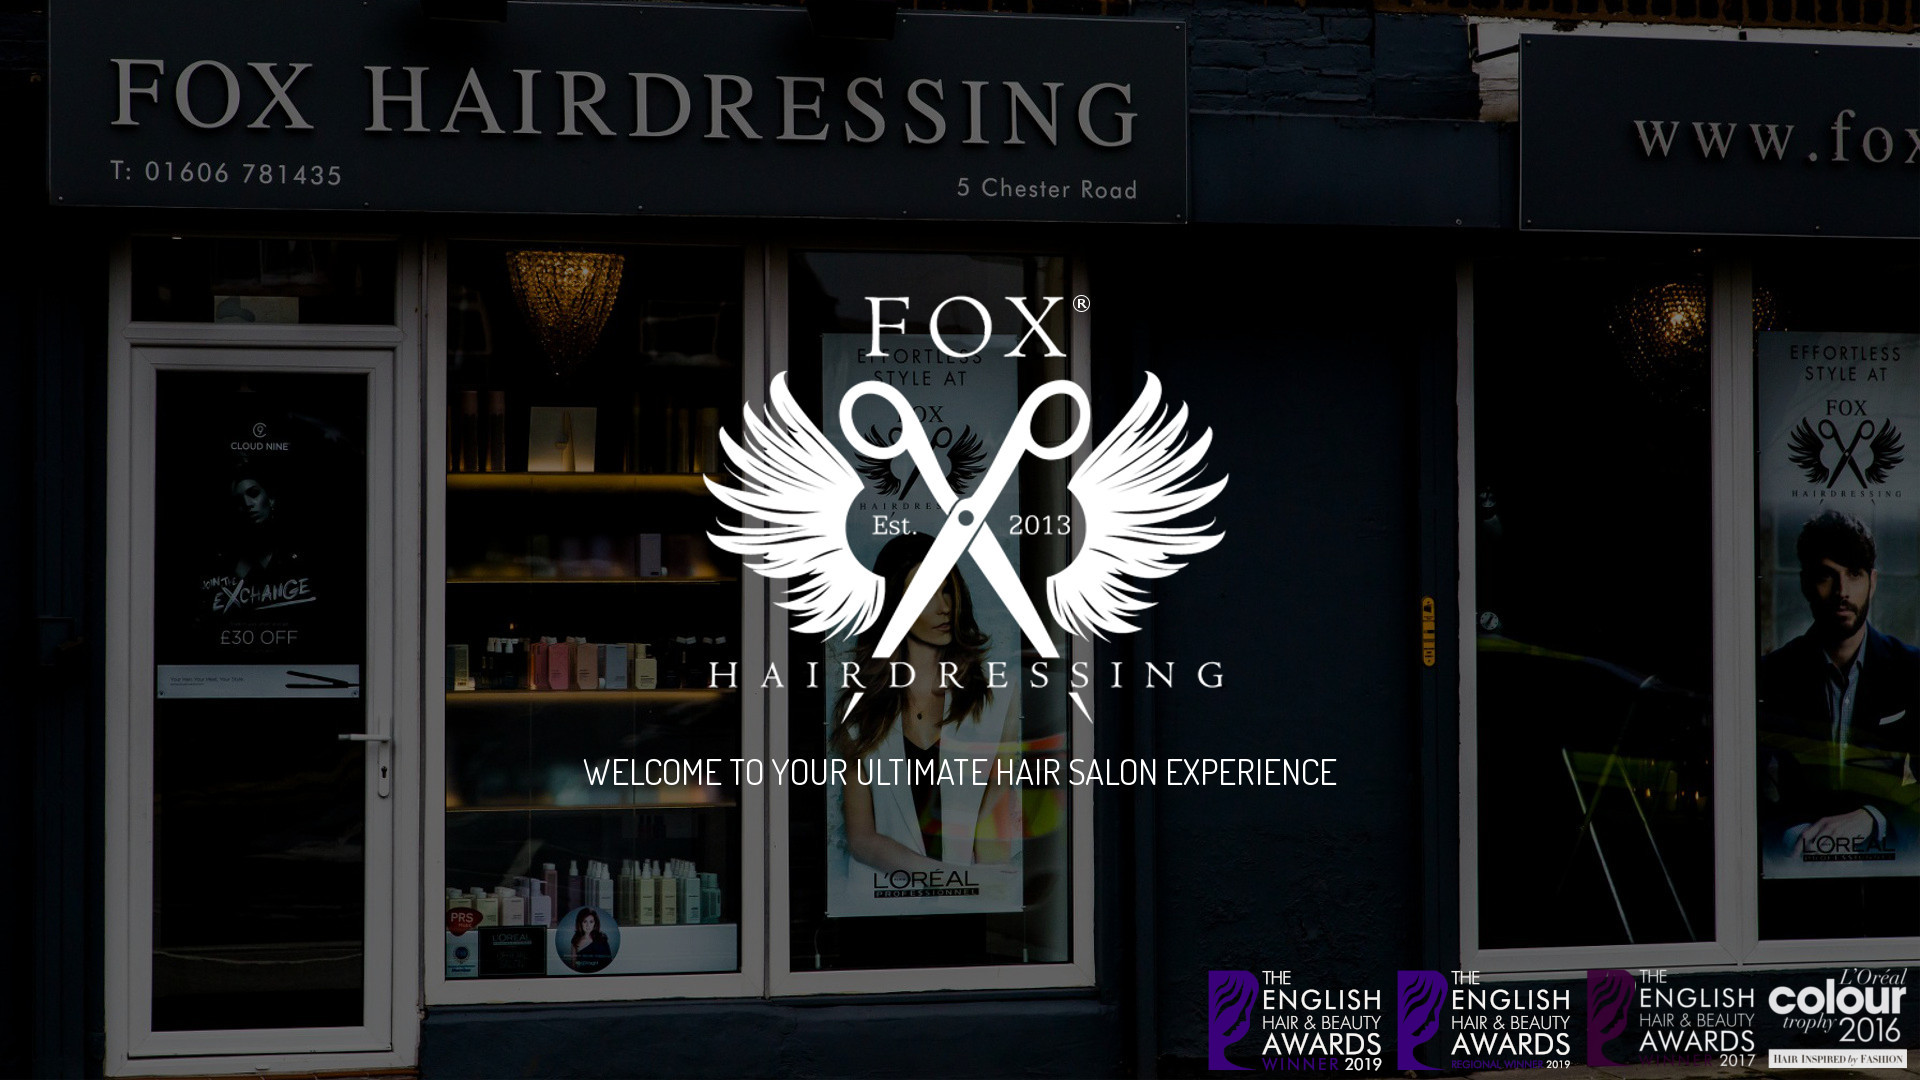 Fox Hairdressing - Entrance